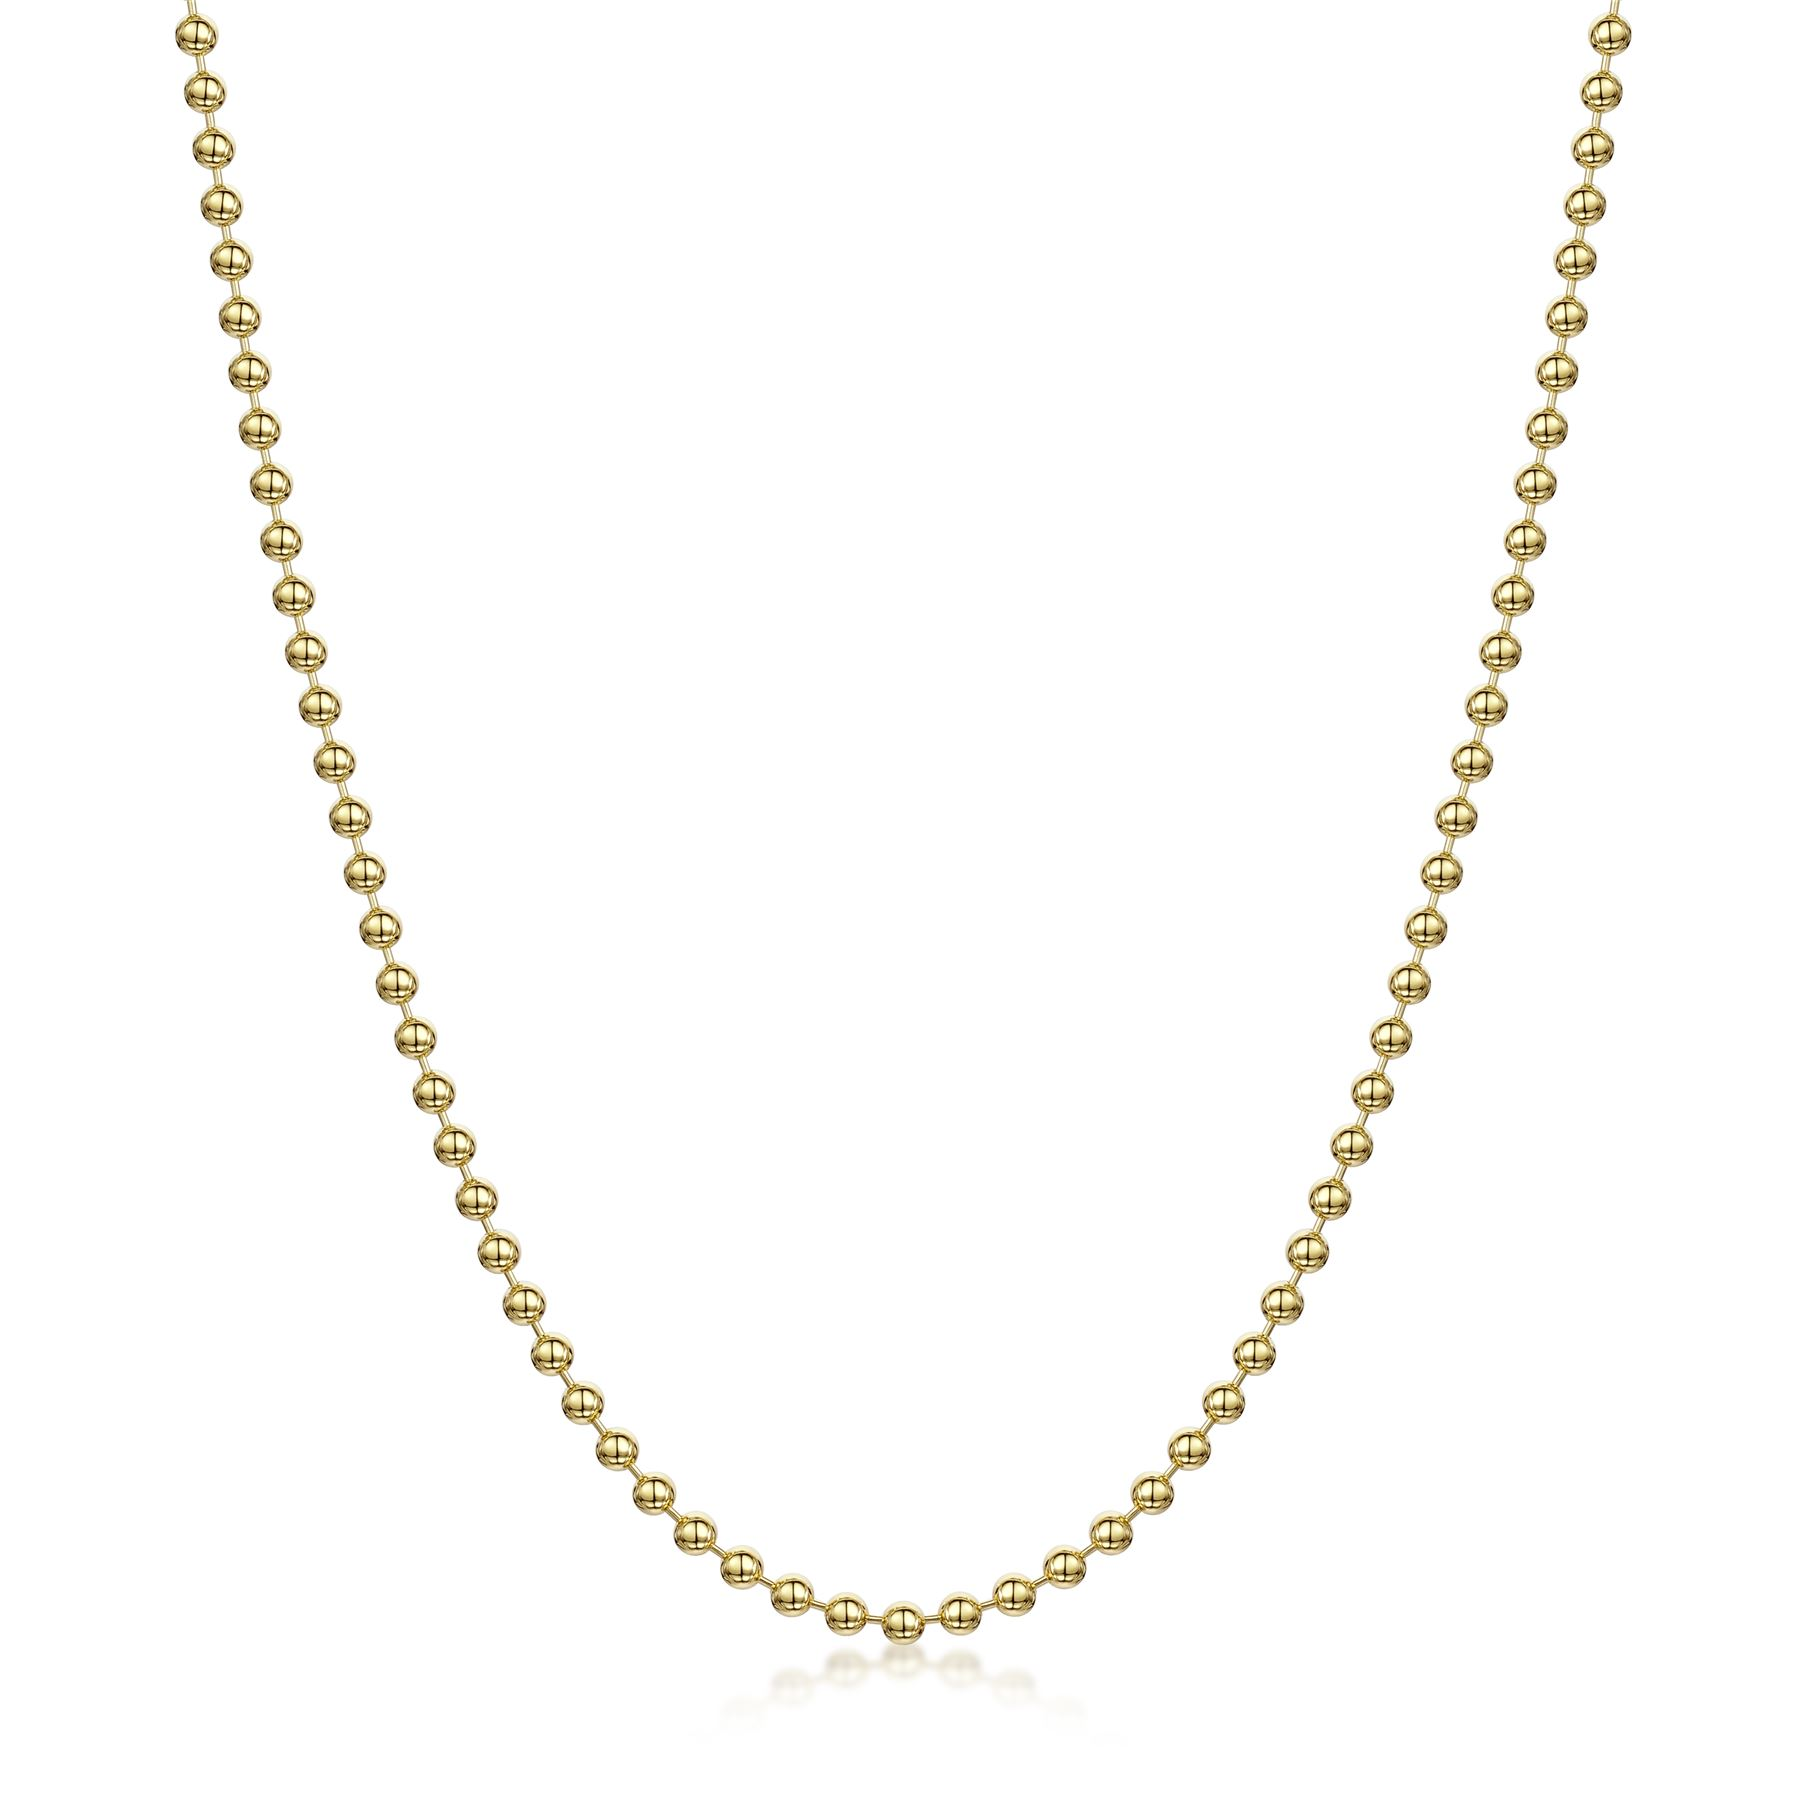 Amberta-Jewelry-Gold-Plated-on-Real-925-Sterling-Silver-Necklace-Chain-Italy thumbnail 27